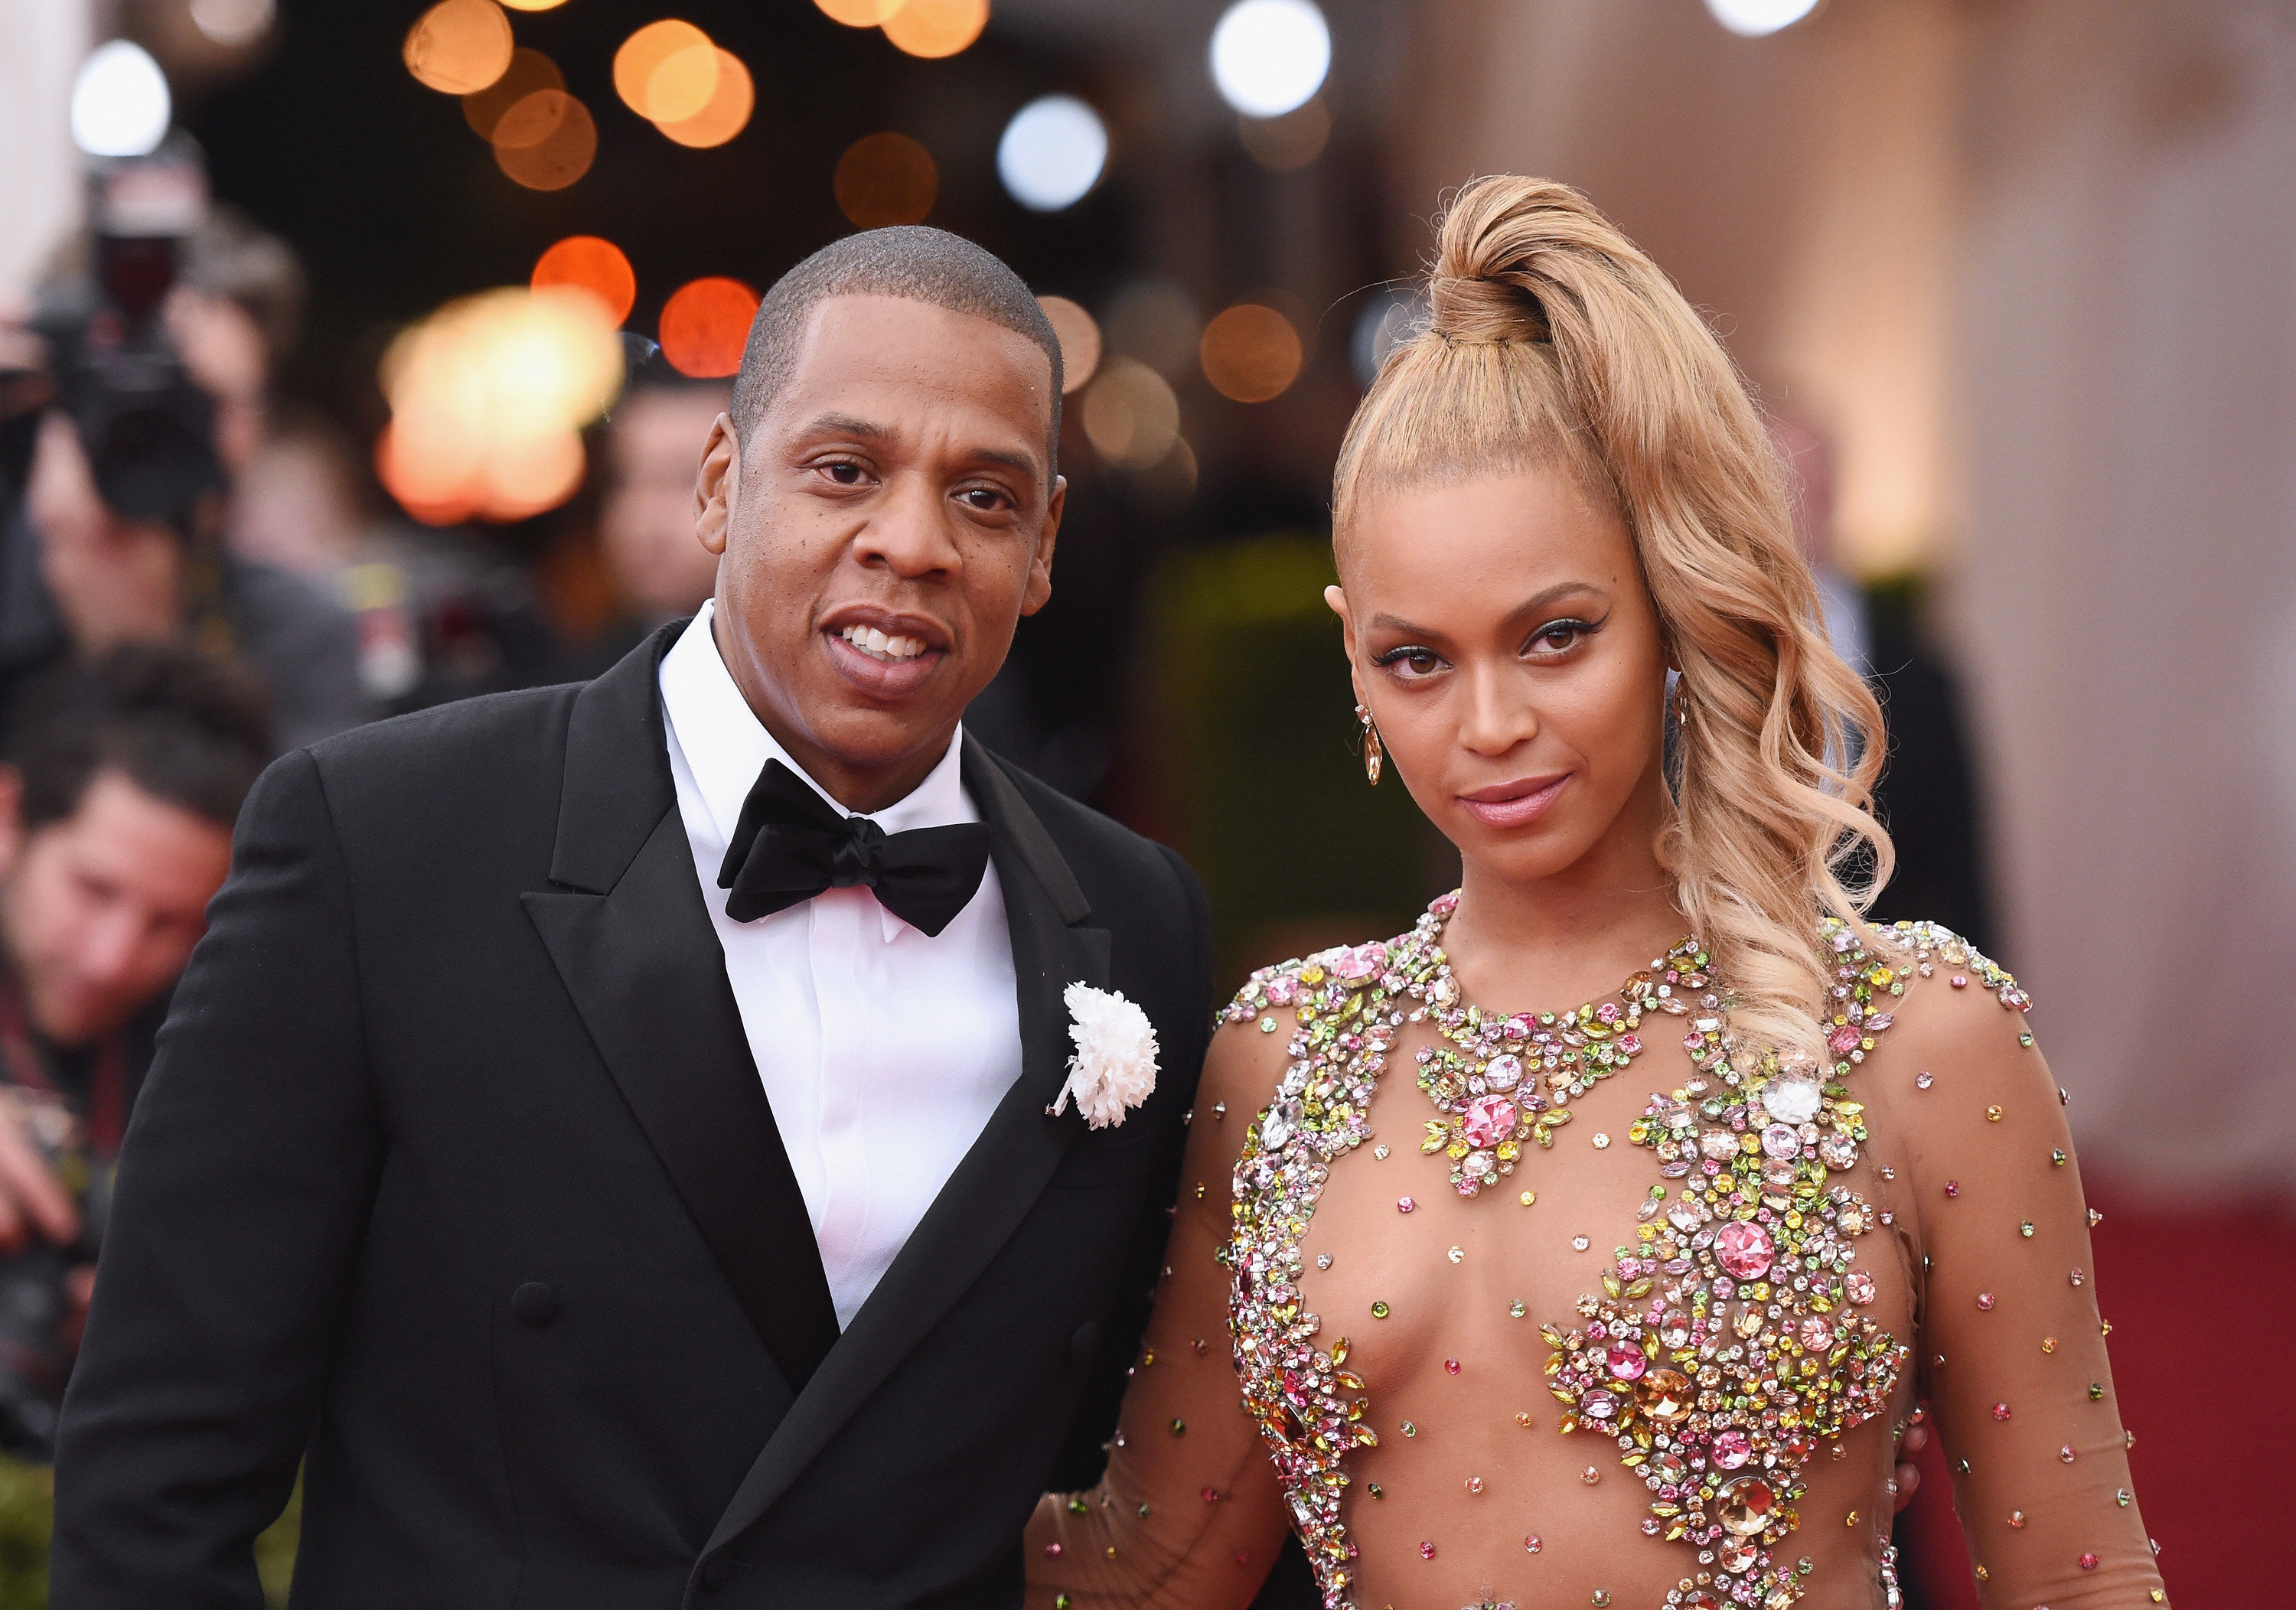 Jay-Z and Beyonce at the Met Gala in 2015